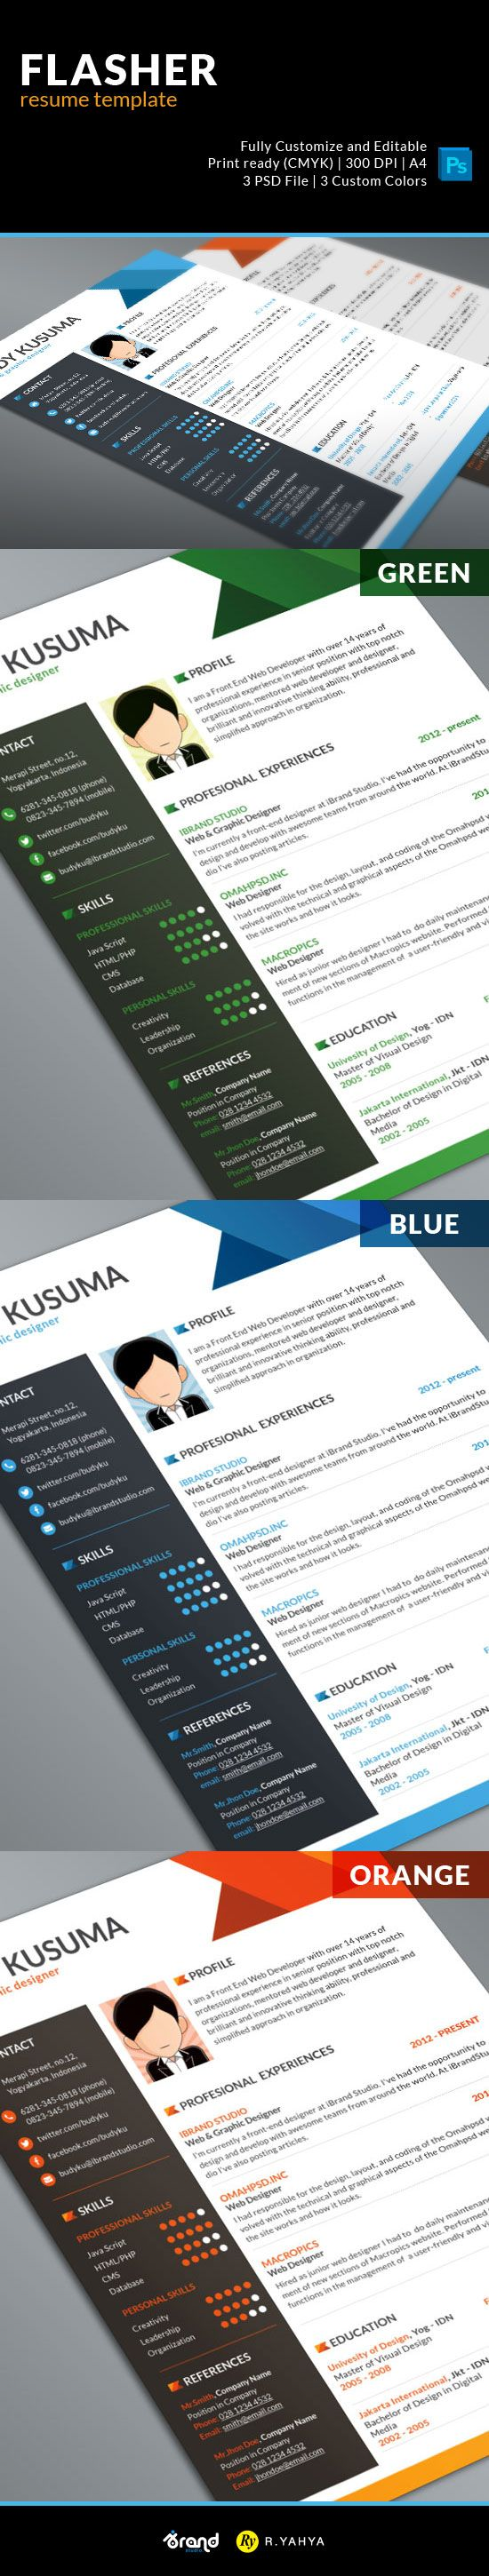 Free Resume Template Flasher 3 Colors